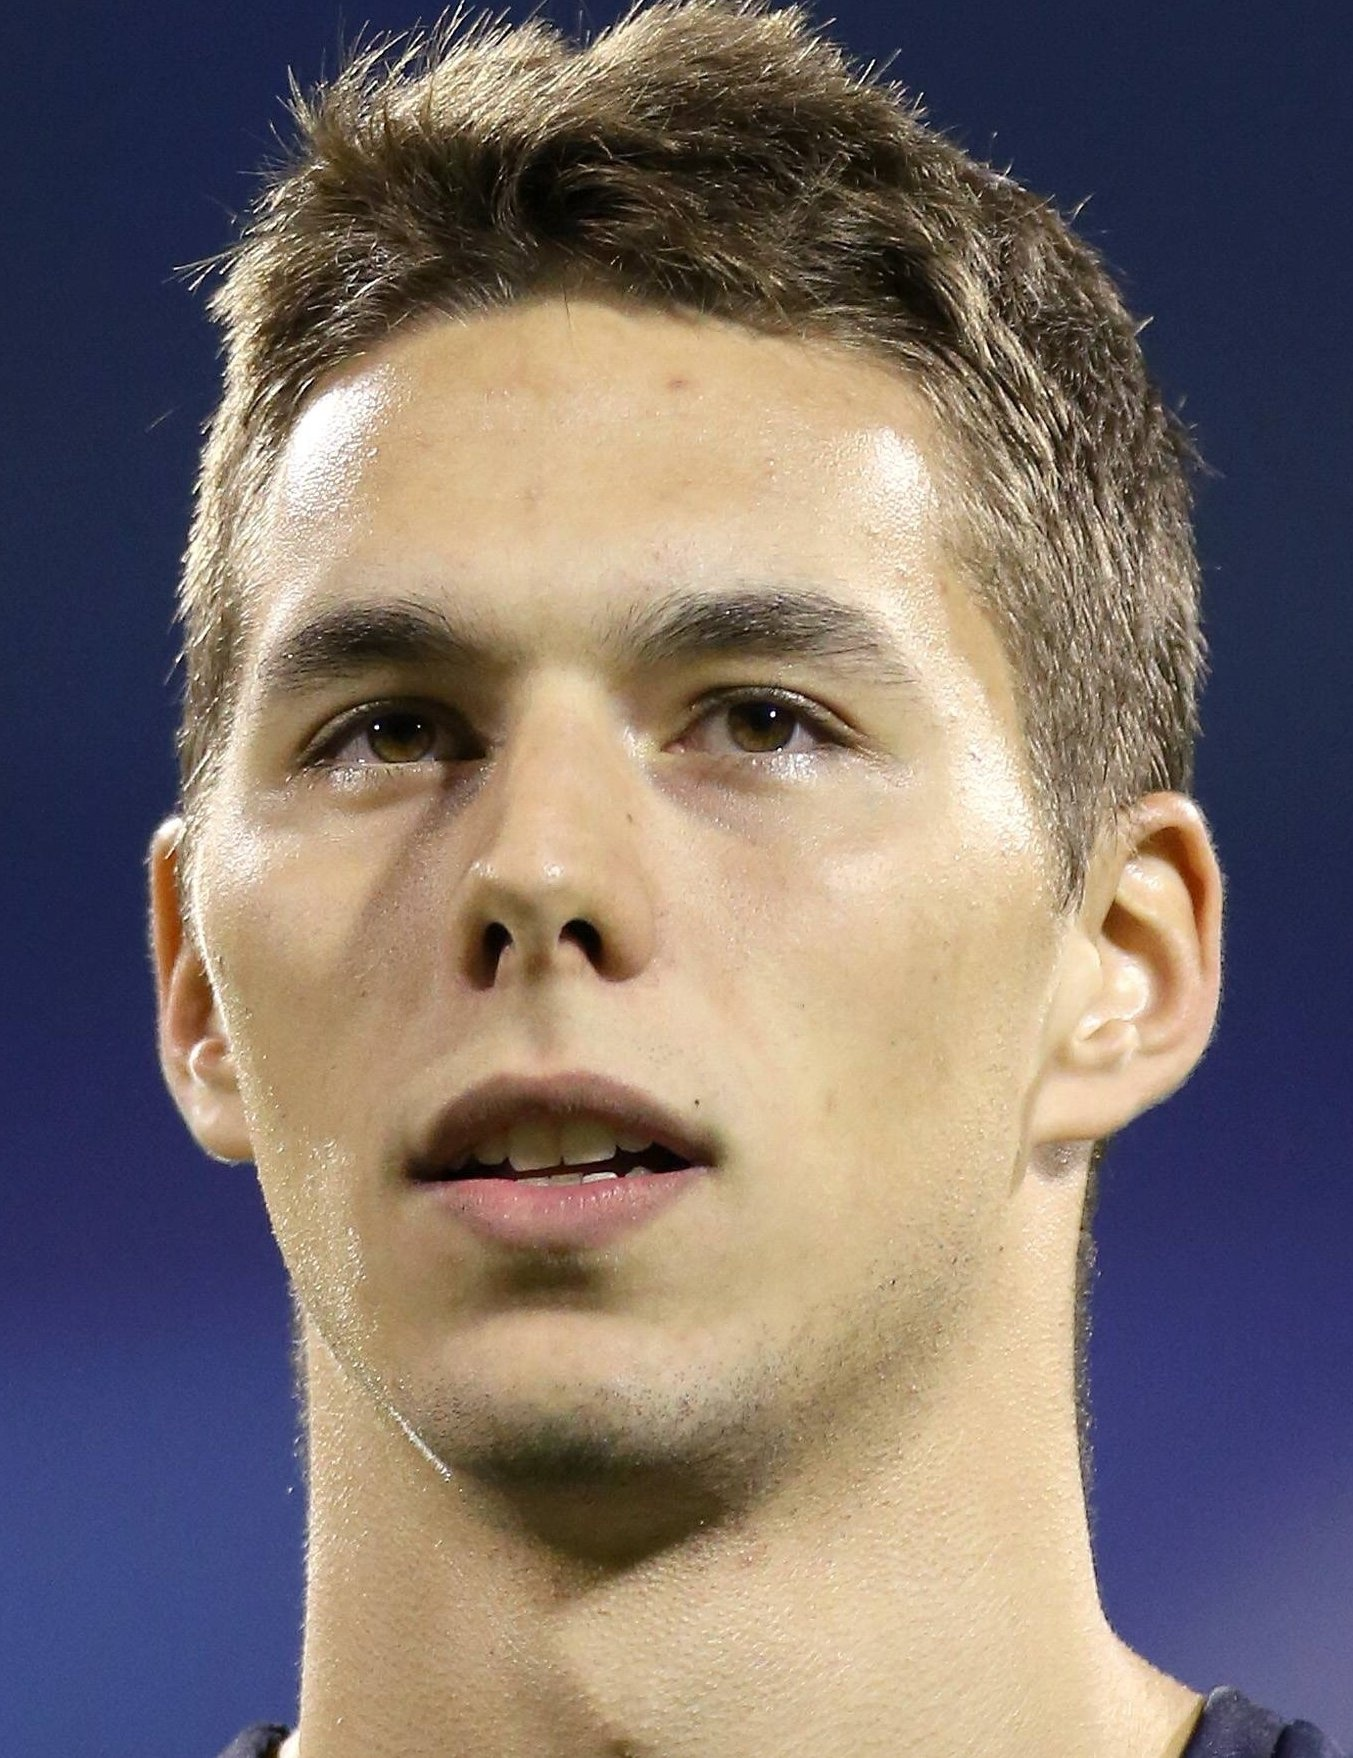 Marko Pjaca earned a  million dollar salary - leaving the net worth at 10 million in 2018